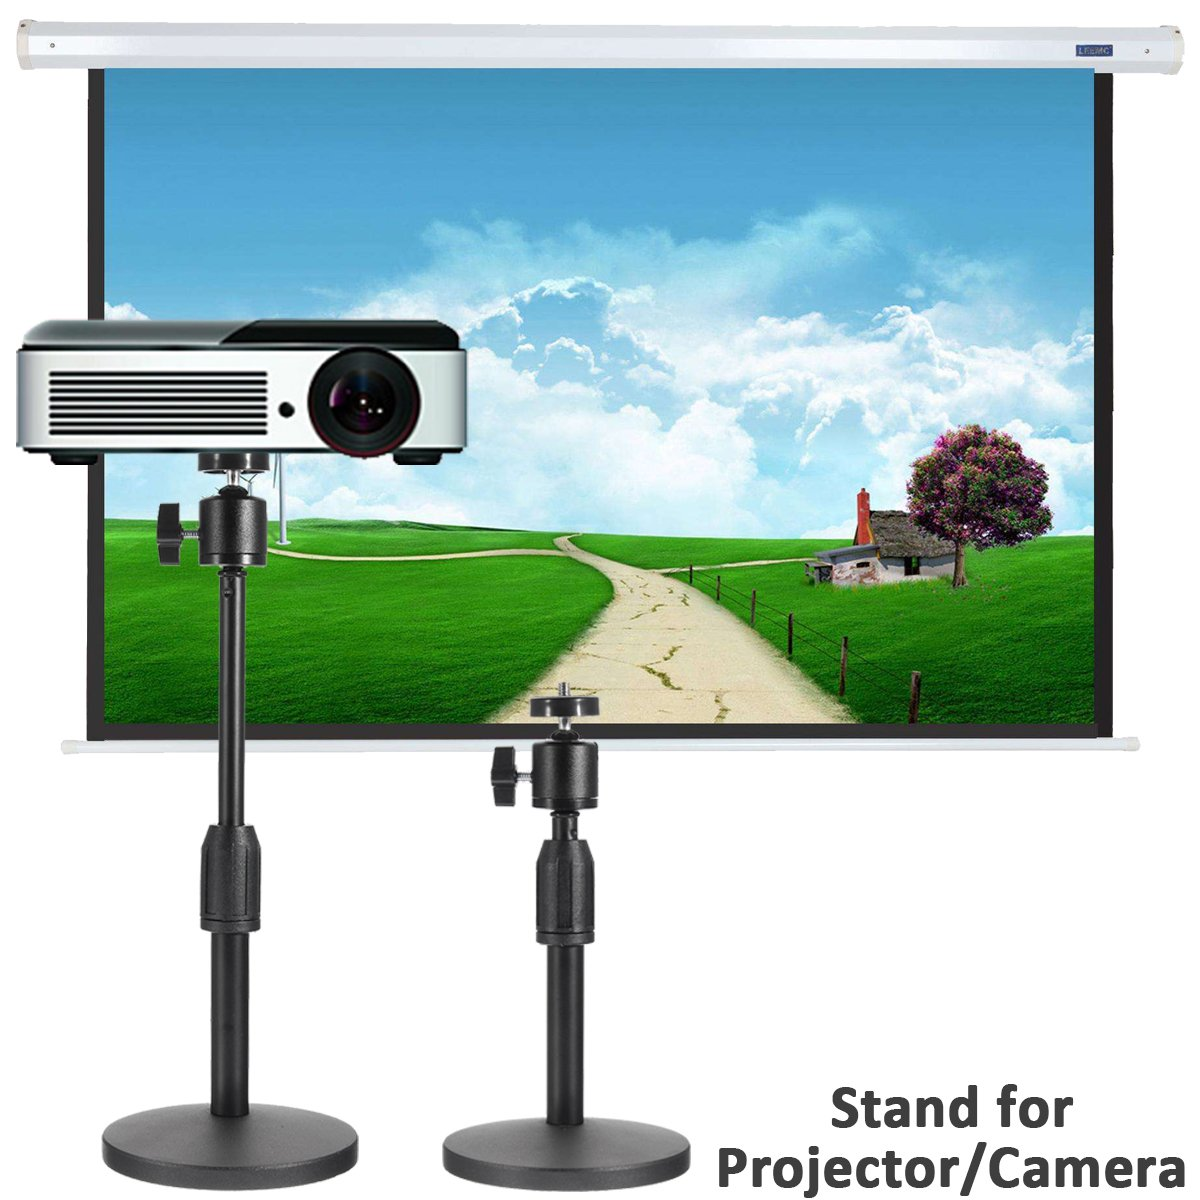 Projector Stand, Caveen Adjustable Projector Stand Lightweight Adjustable Height 10.65'' to 13.35'' Floor Stand with Round Base For Projector, Small Camera, Webcam,Video Cam Bestcombine